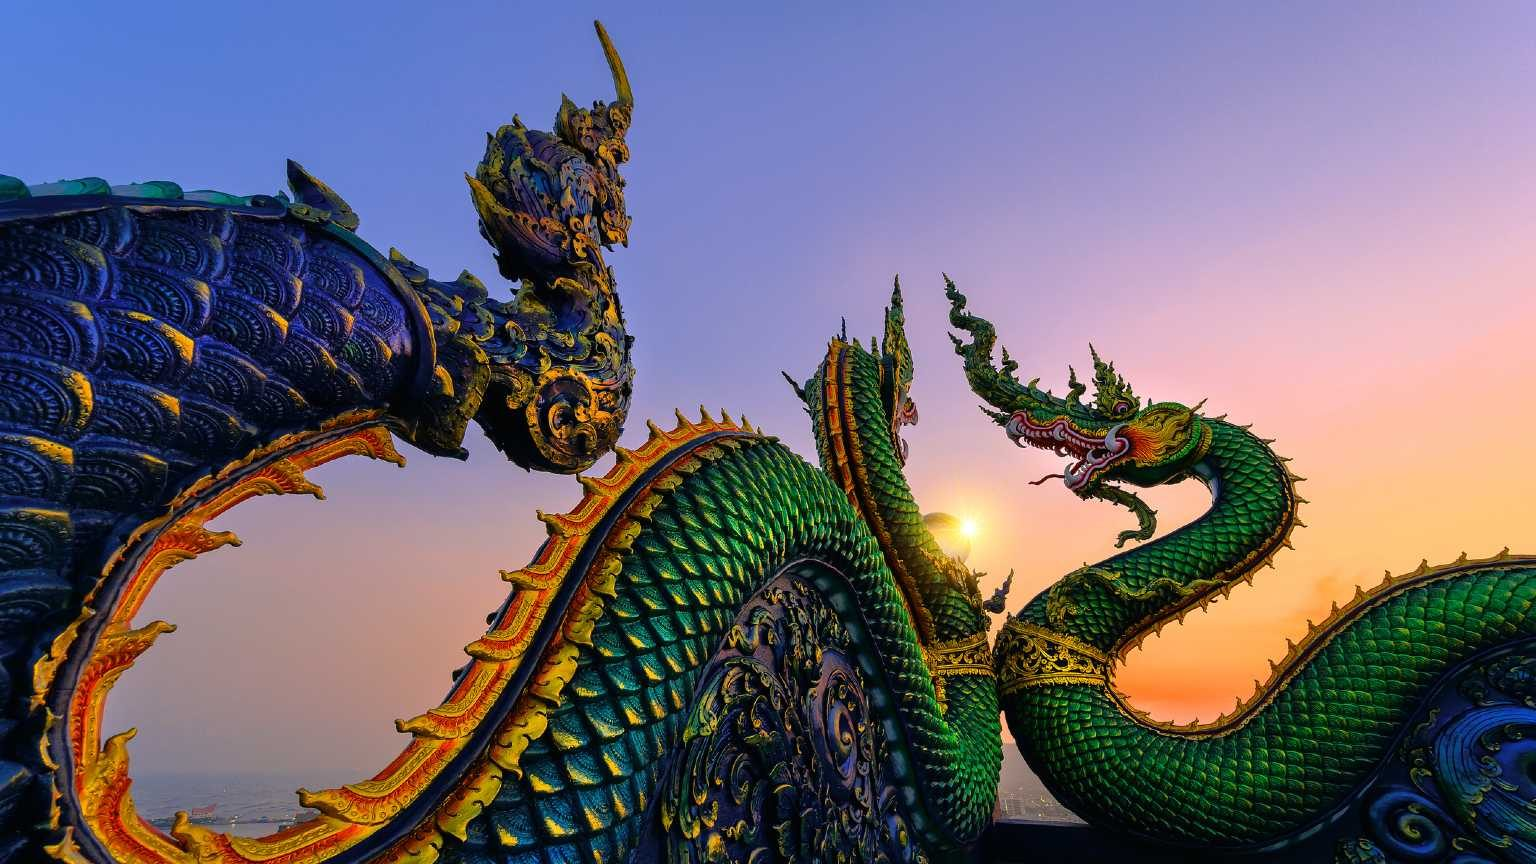 king of Nagas, Serpent of Crystal, Ball The magnificent architecture of the temple